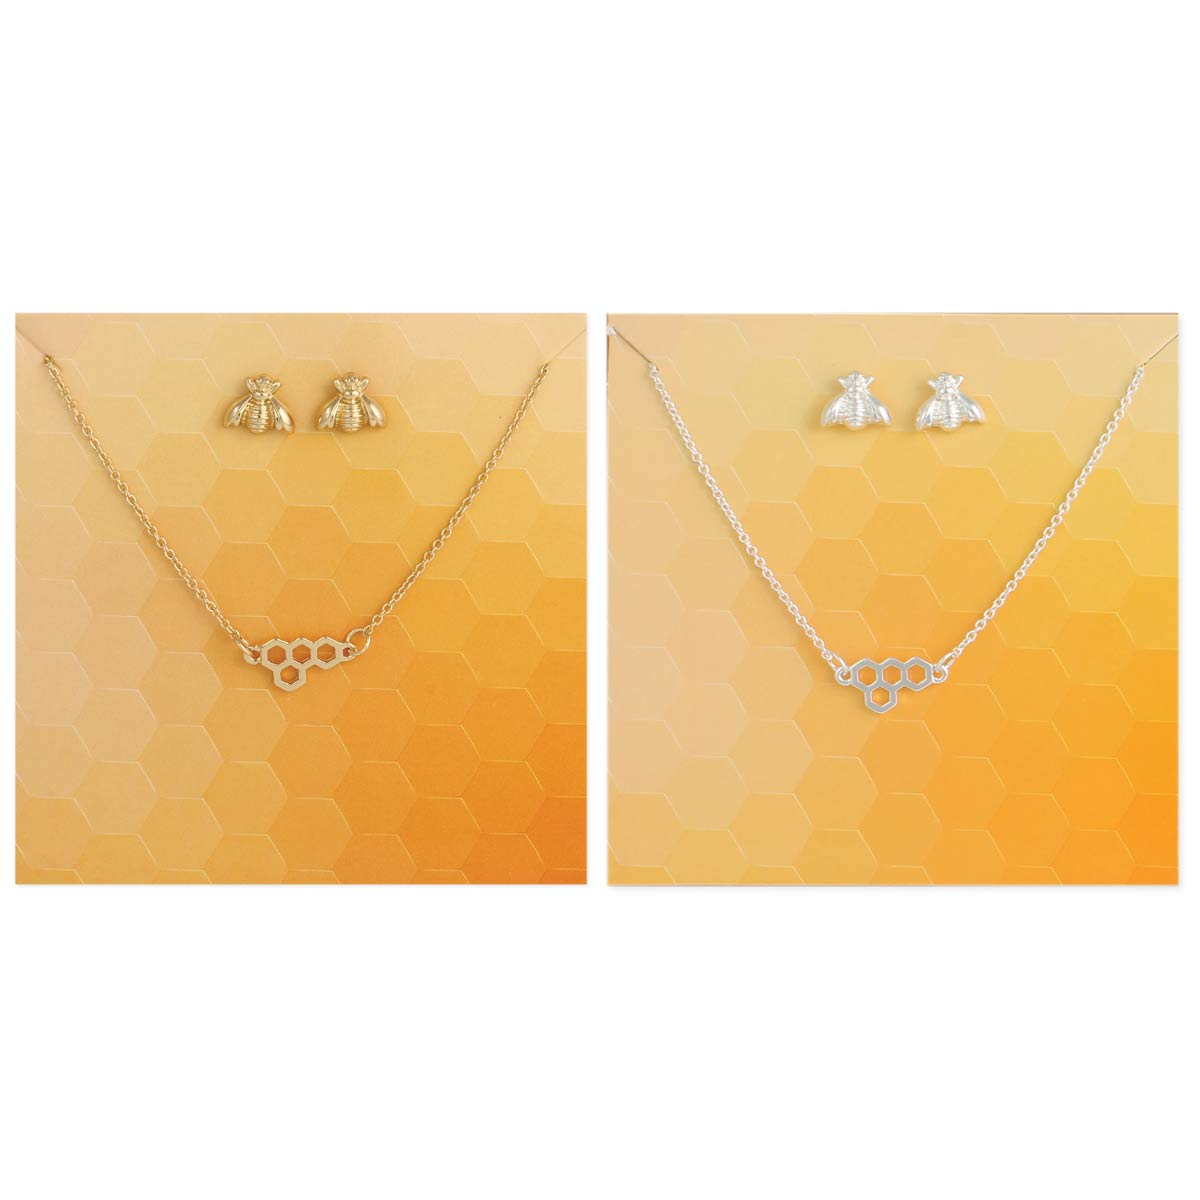 Carded Honeycomb Bee Necklace Earring Set